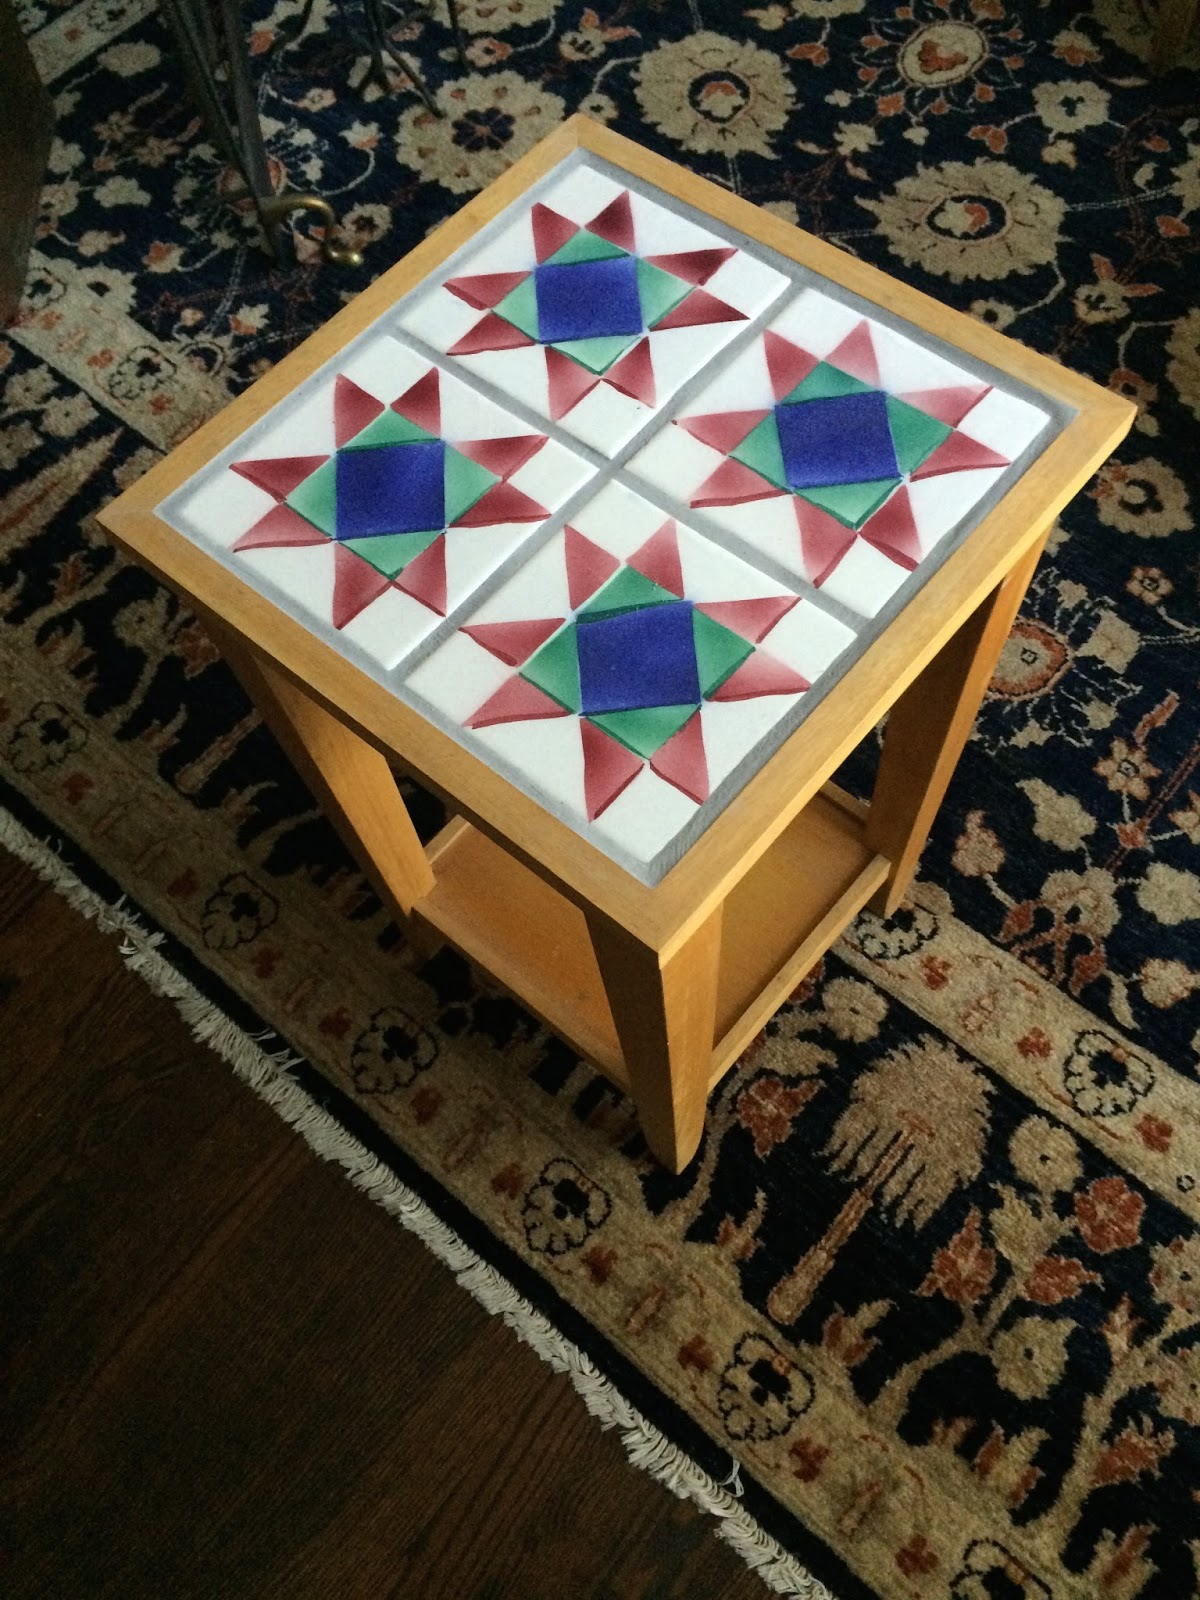 Amish star quilt pattern tile end table architectural ceramics amish star quilt pattern tile end table dailygadgetfo Images